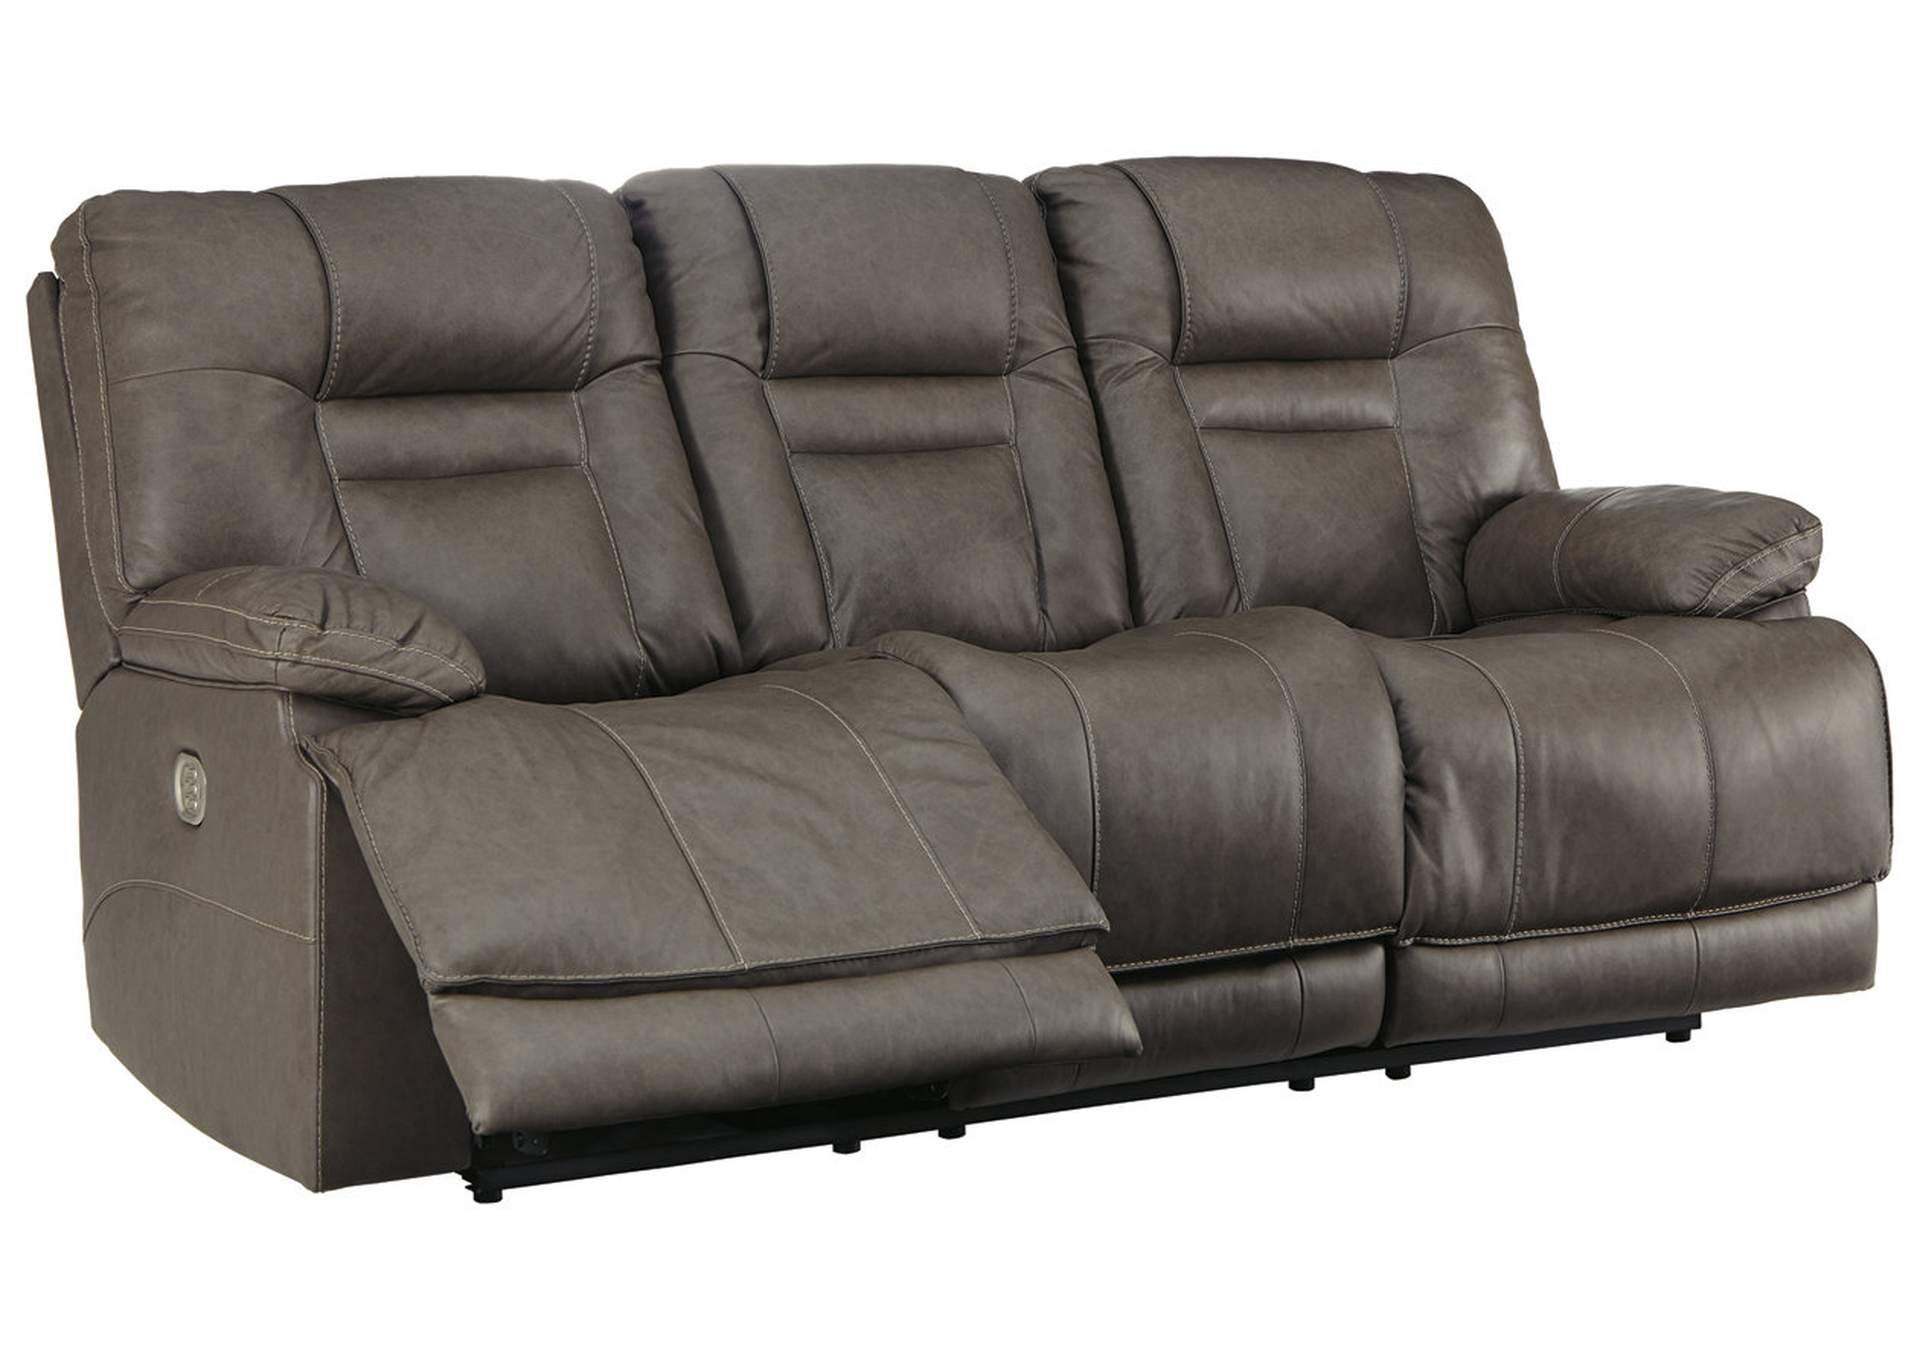 Picture of: Wurstrow Power Reclining Sofa Ashley Furniture Homestore Independently Owned And Operated By Empresas Berrios